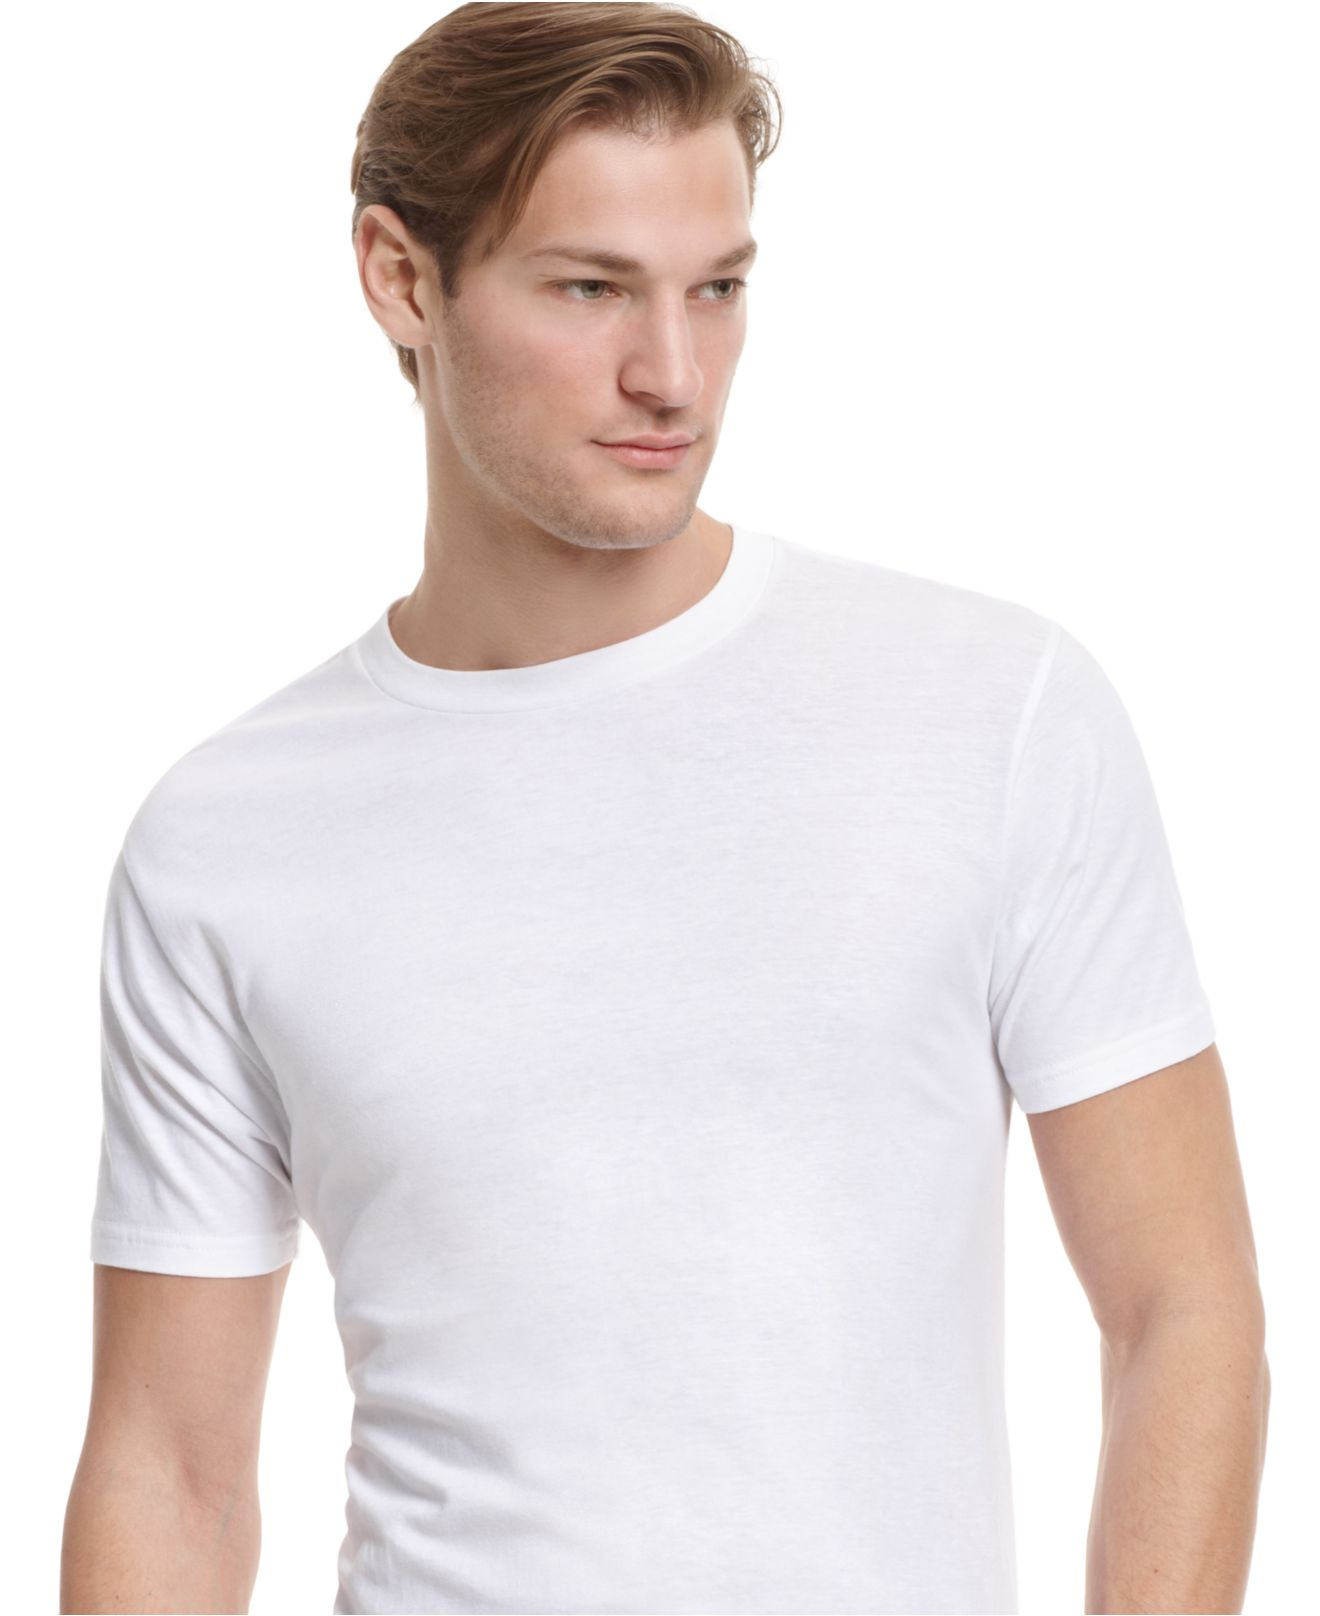 alfani men 39 s crew neck t shirt in white for men lyst